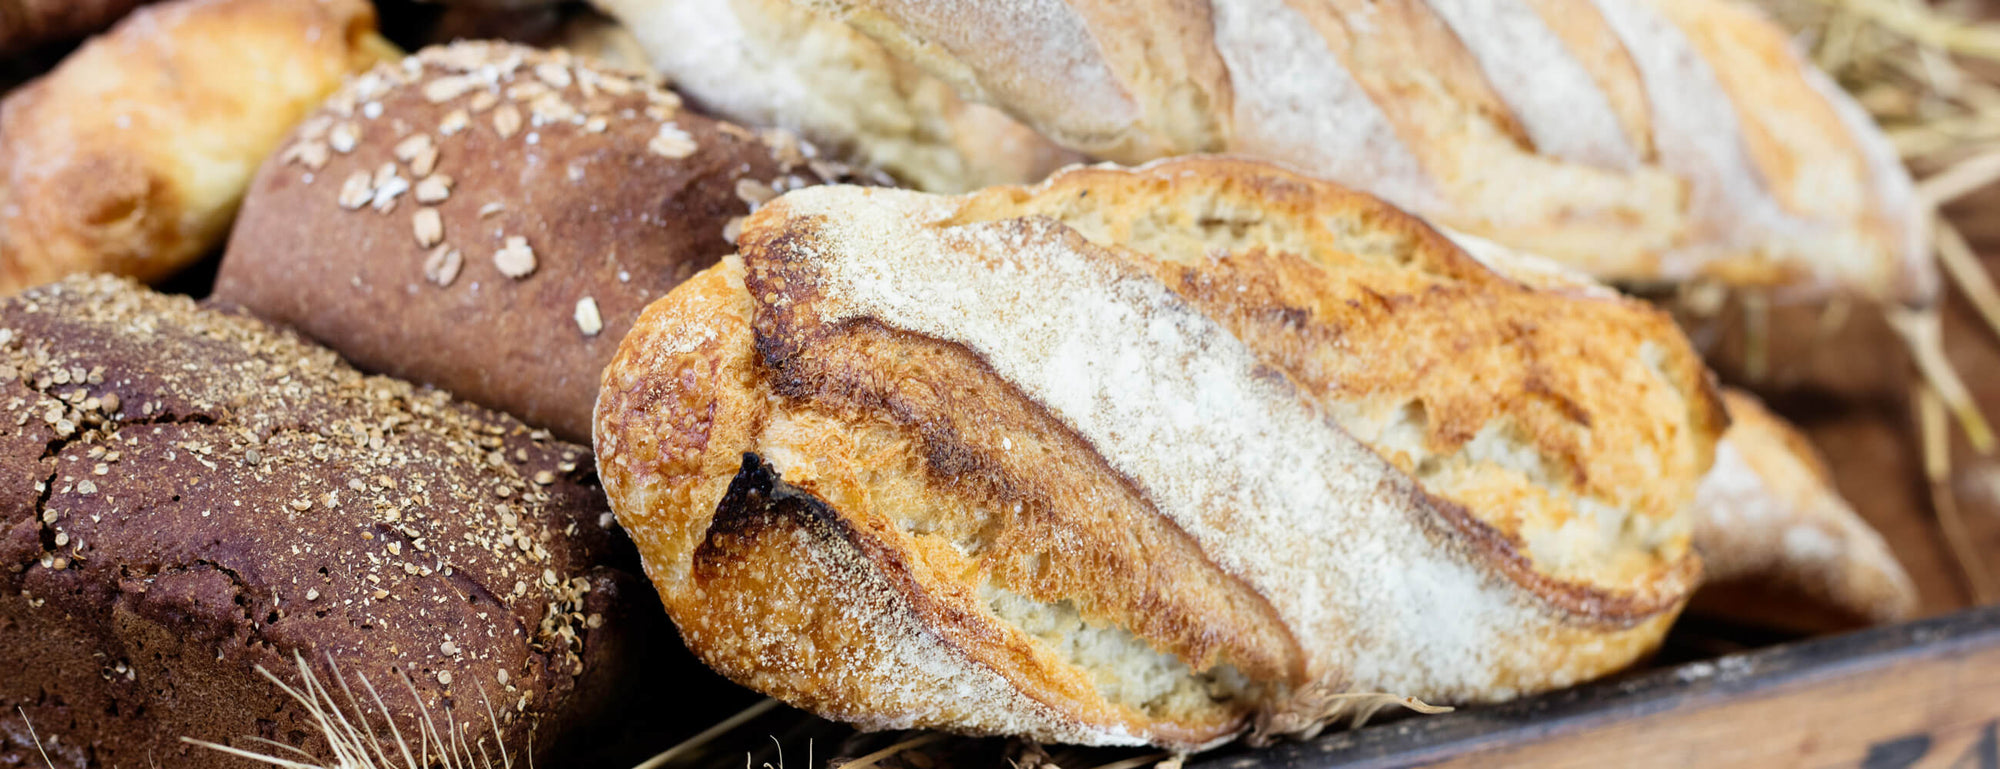 Hambleton Bakery freshly baked bread